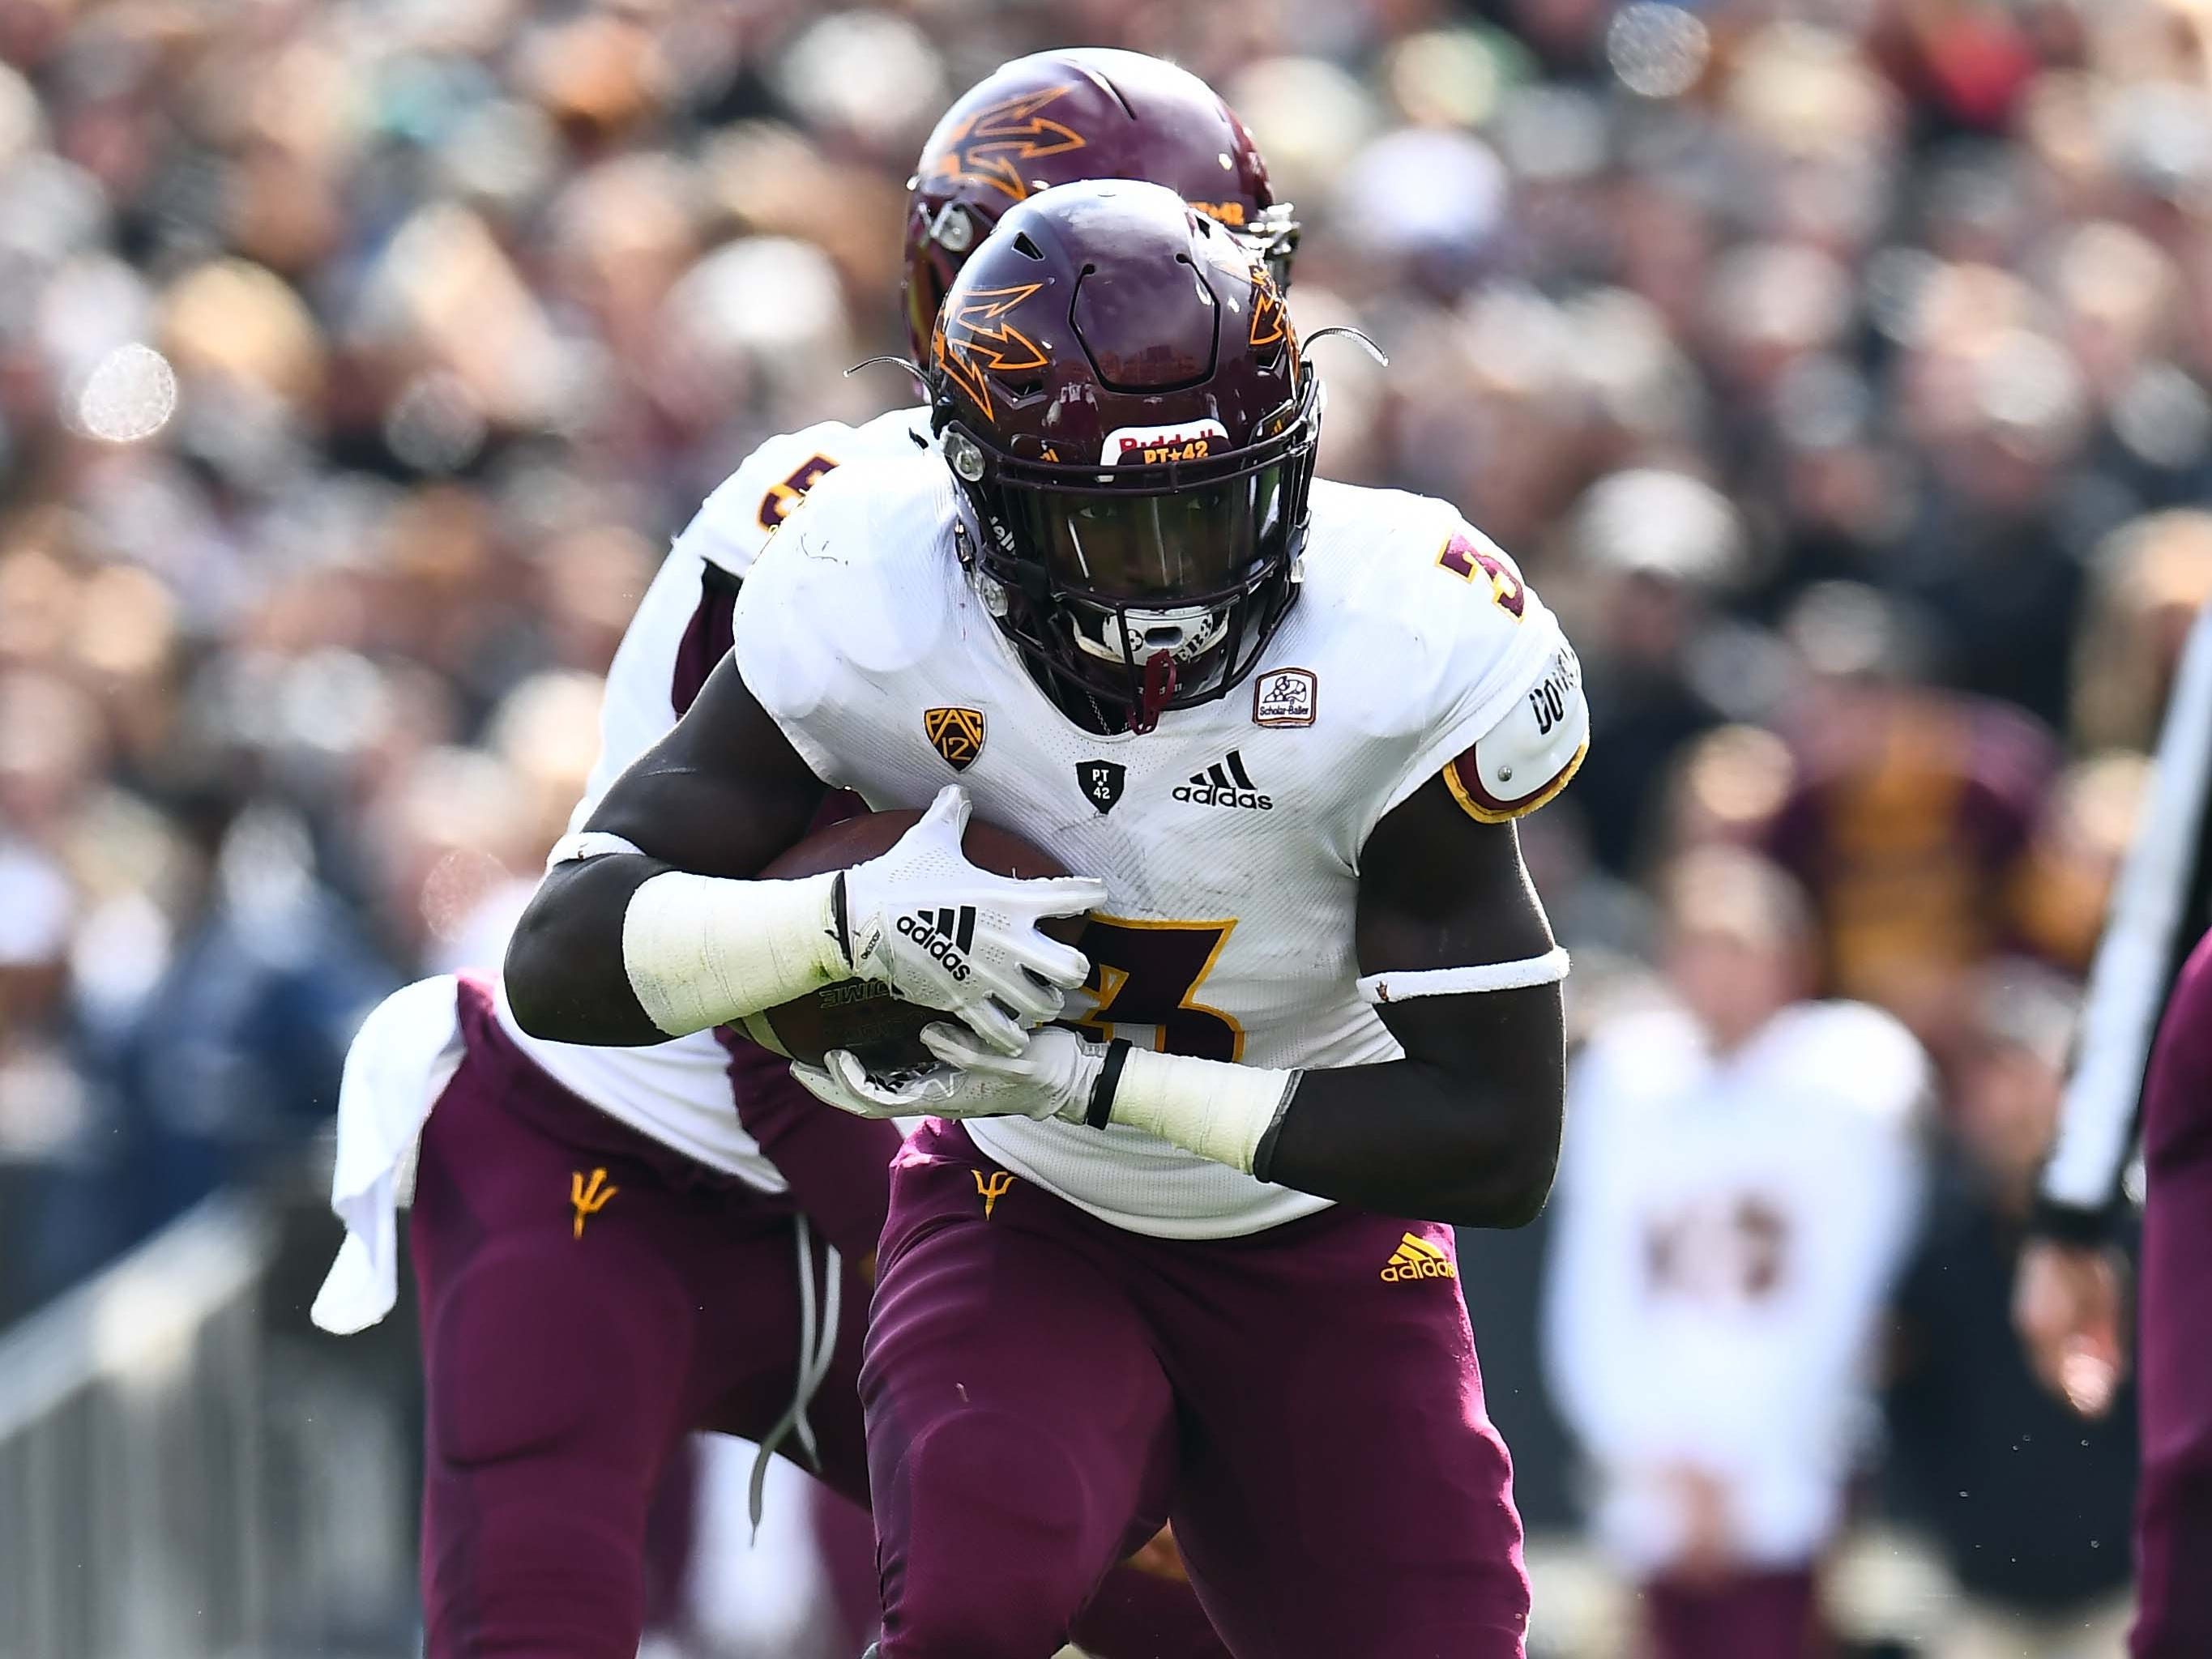 Oct 6, 2018; Boulder, CO, USA; Arizona State Sun Devils running back Eno Benjamin (3) carries the ball in the second quarter against the Colorado Buffaloes at Folsom Field. Mandatory Credit: Ron Chenoy-USA TODAY Sports